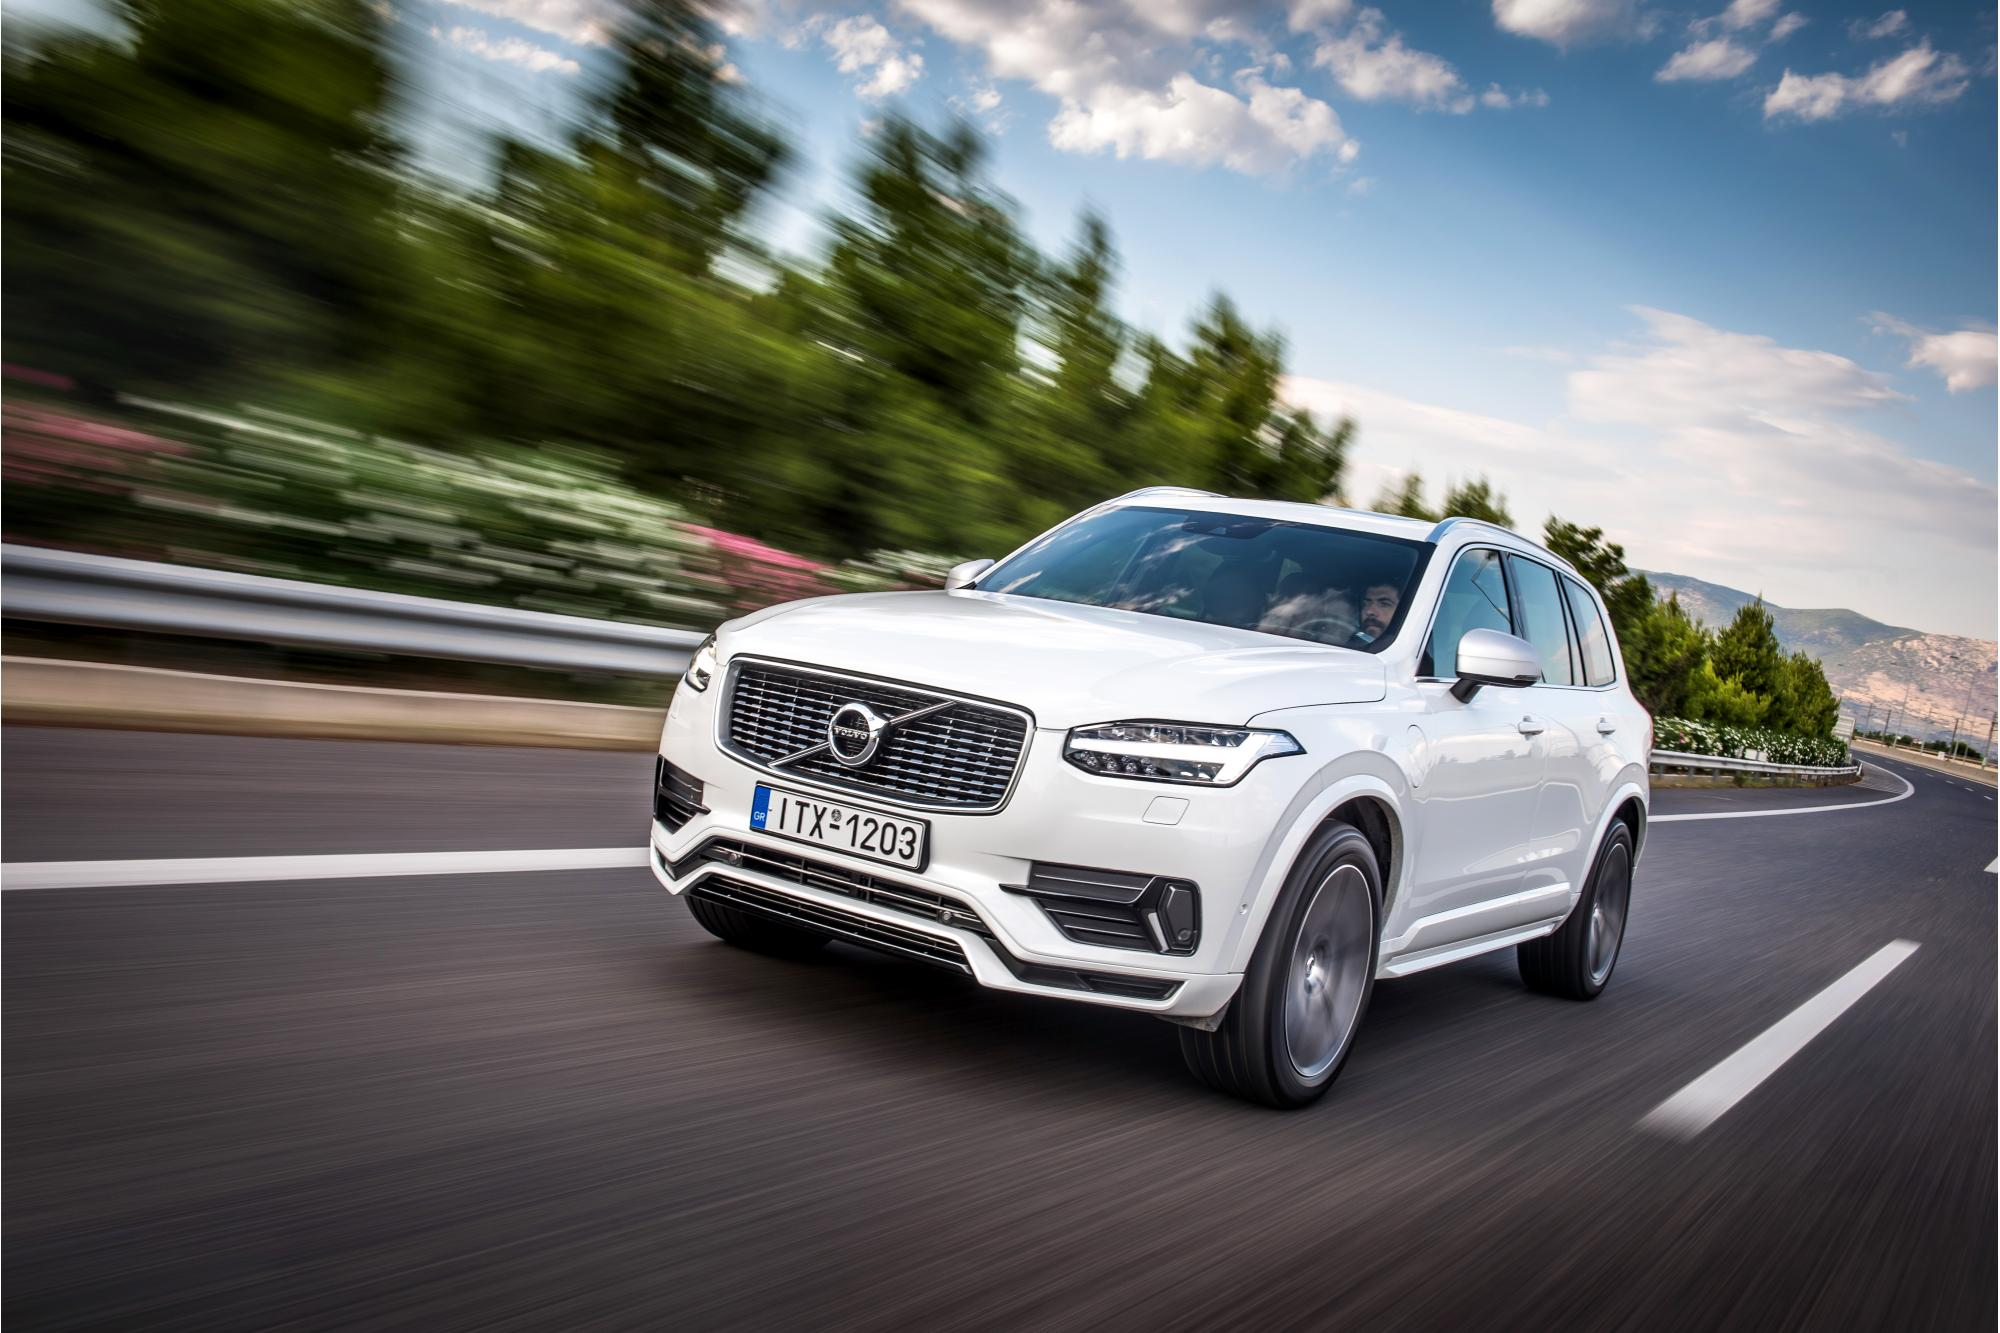 Volvo XC90 T8 AWD PHEV Geartronic R-Design 407Ps